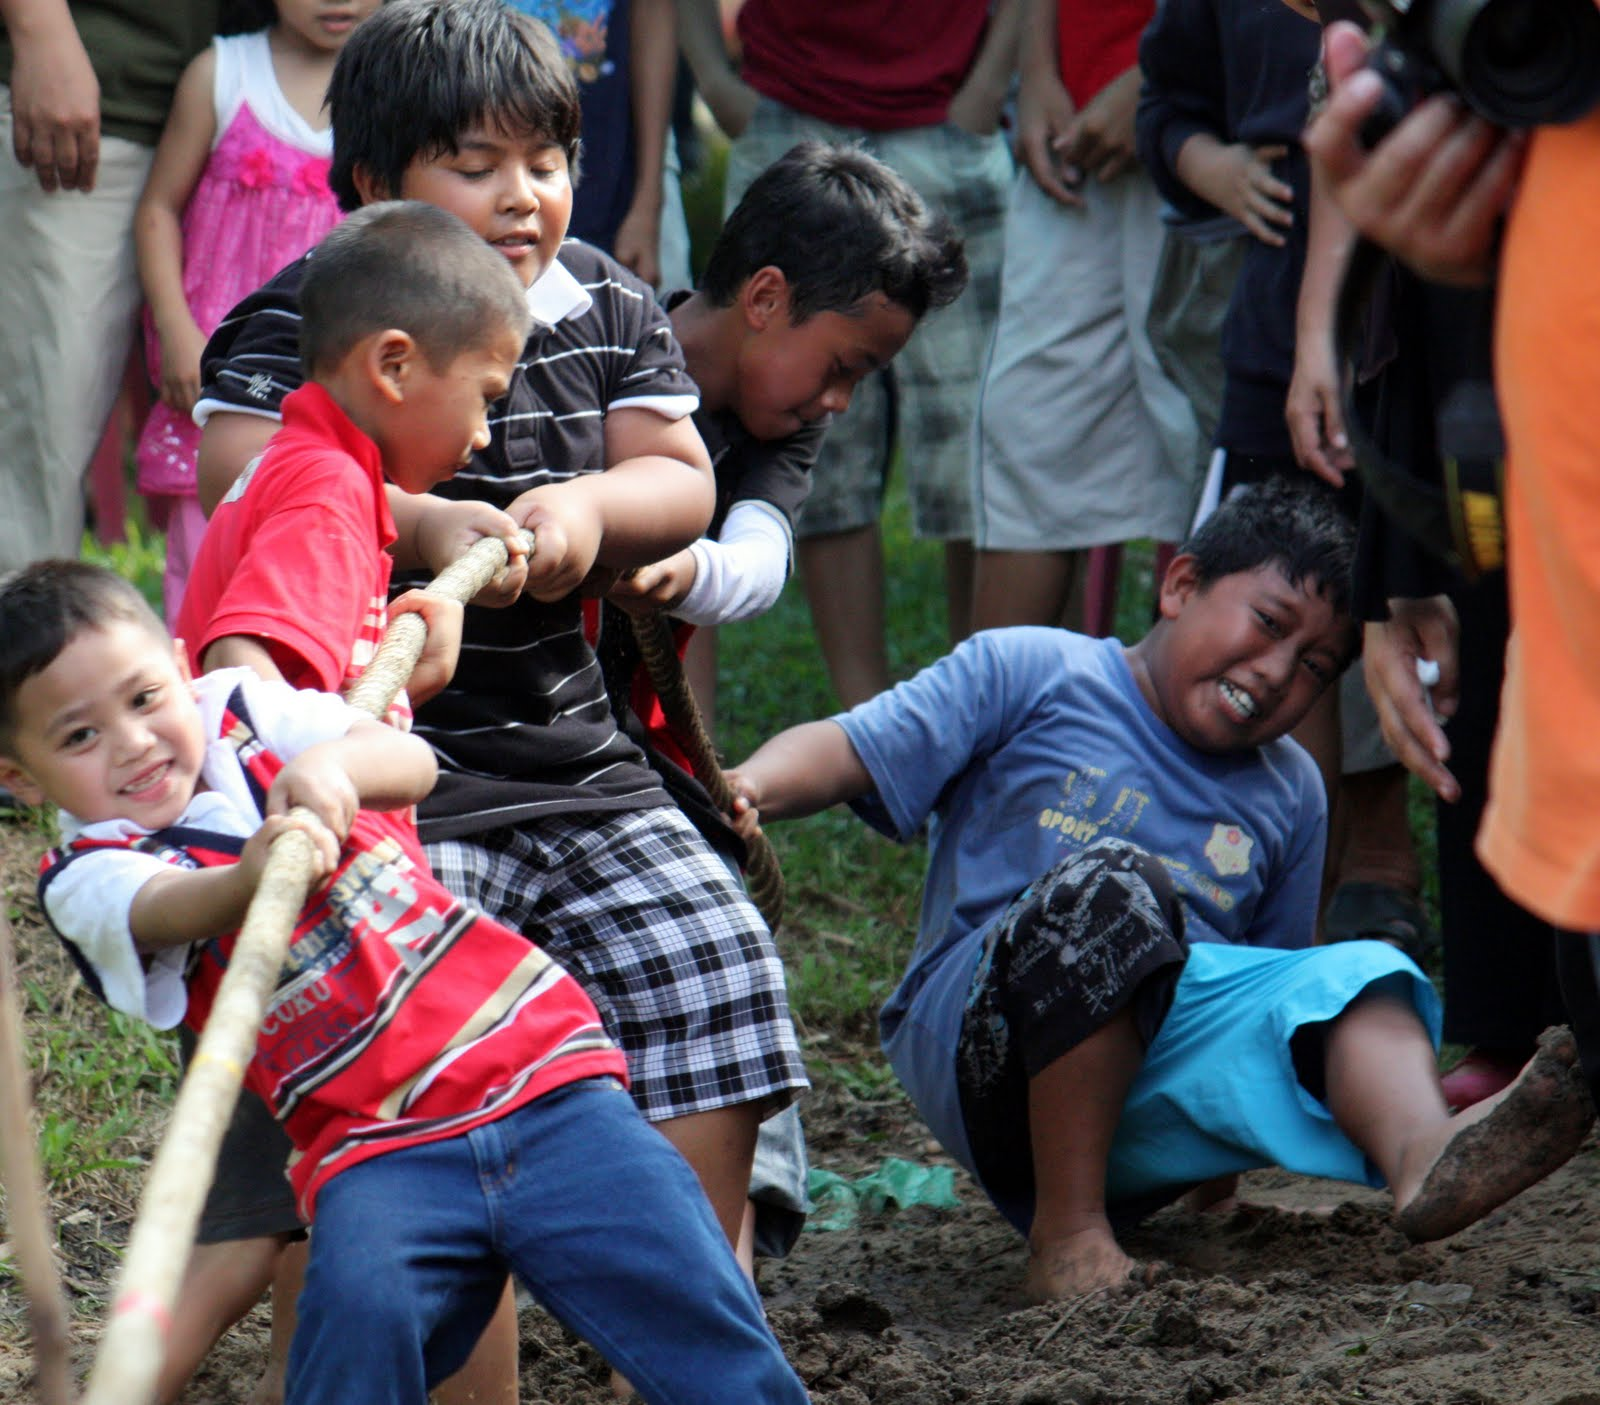 072 tarik kalat - kids tug-of-war